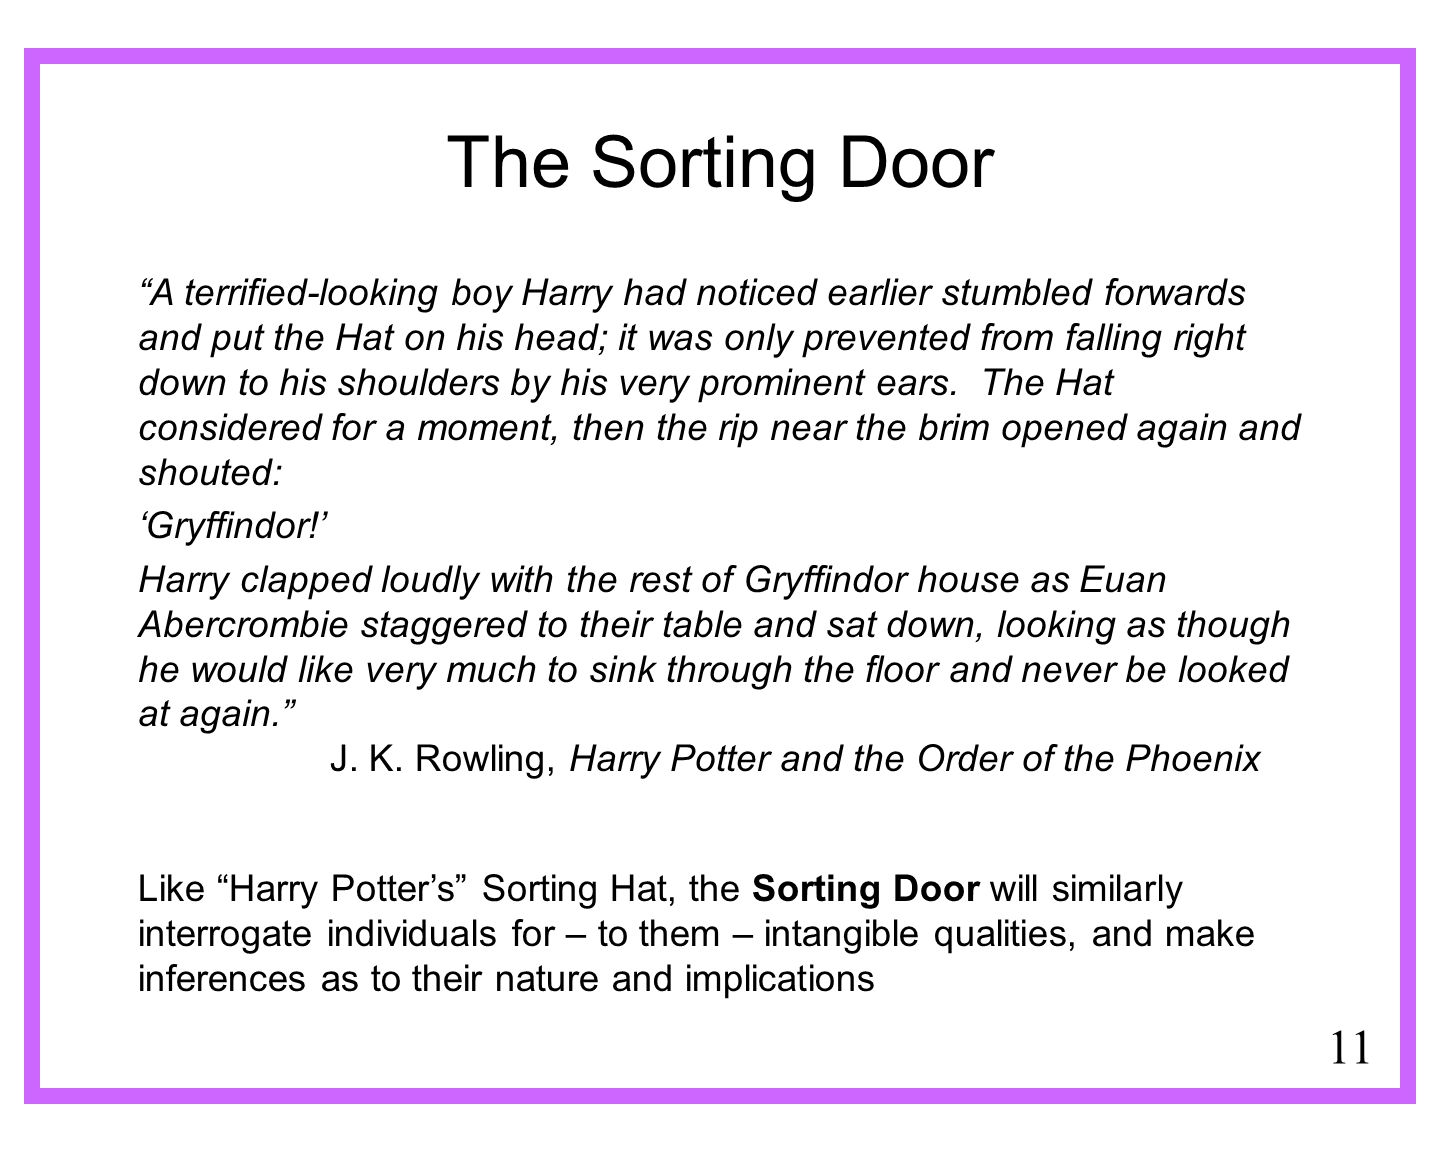 11 The Sorting Door A terrified-looking boy Harry had noticed earlier stumbled forwards and put the Hat on his head; it was only prevented from fallin